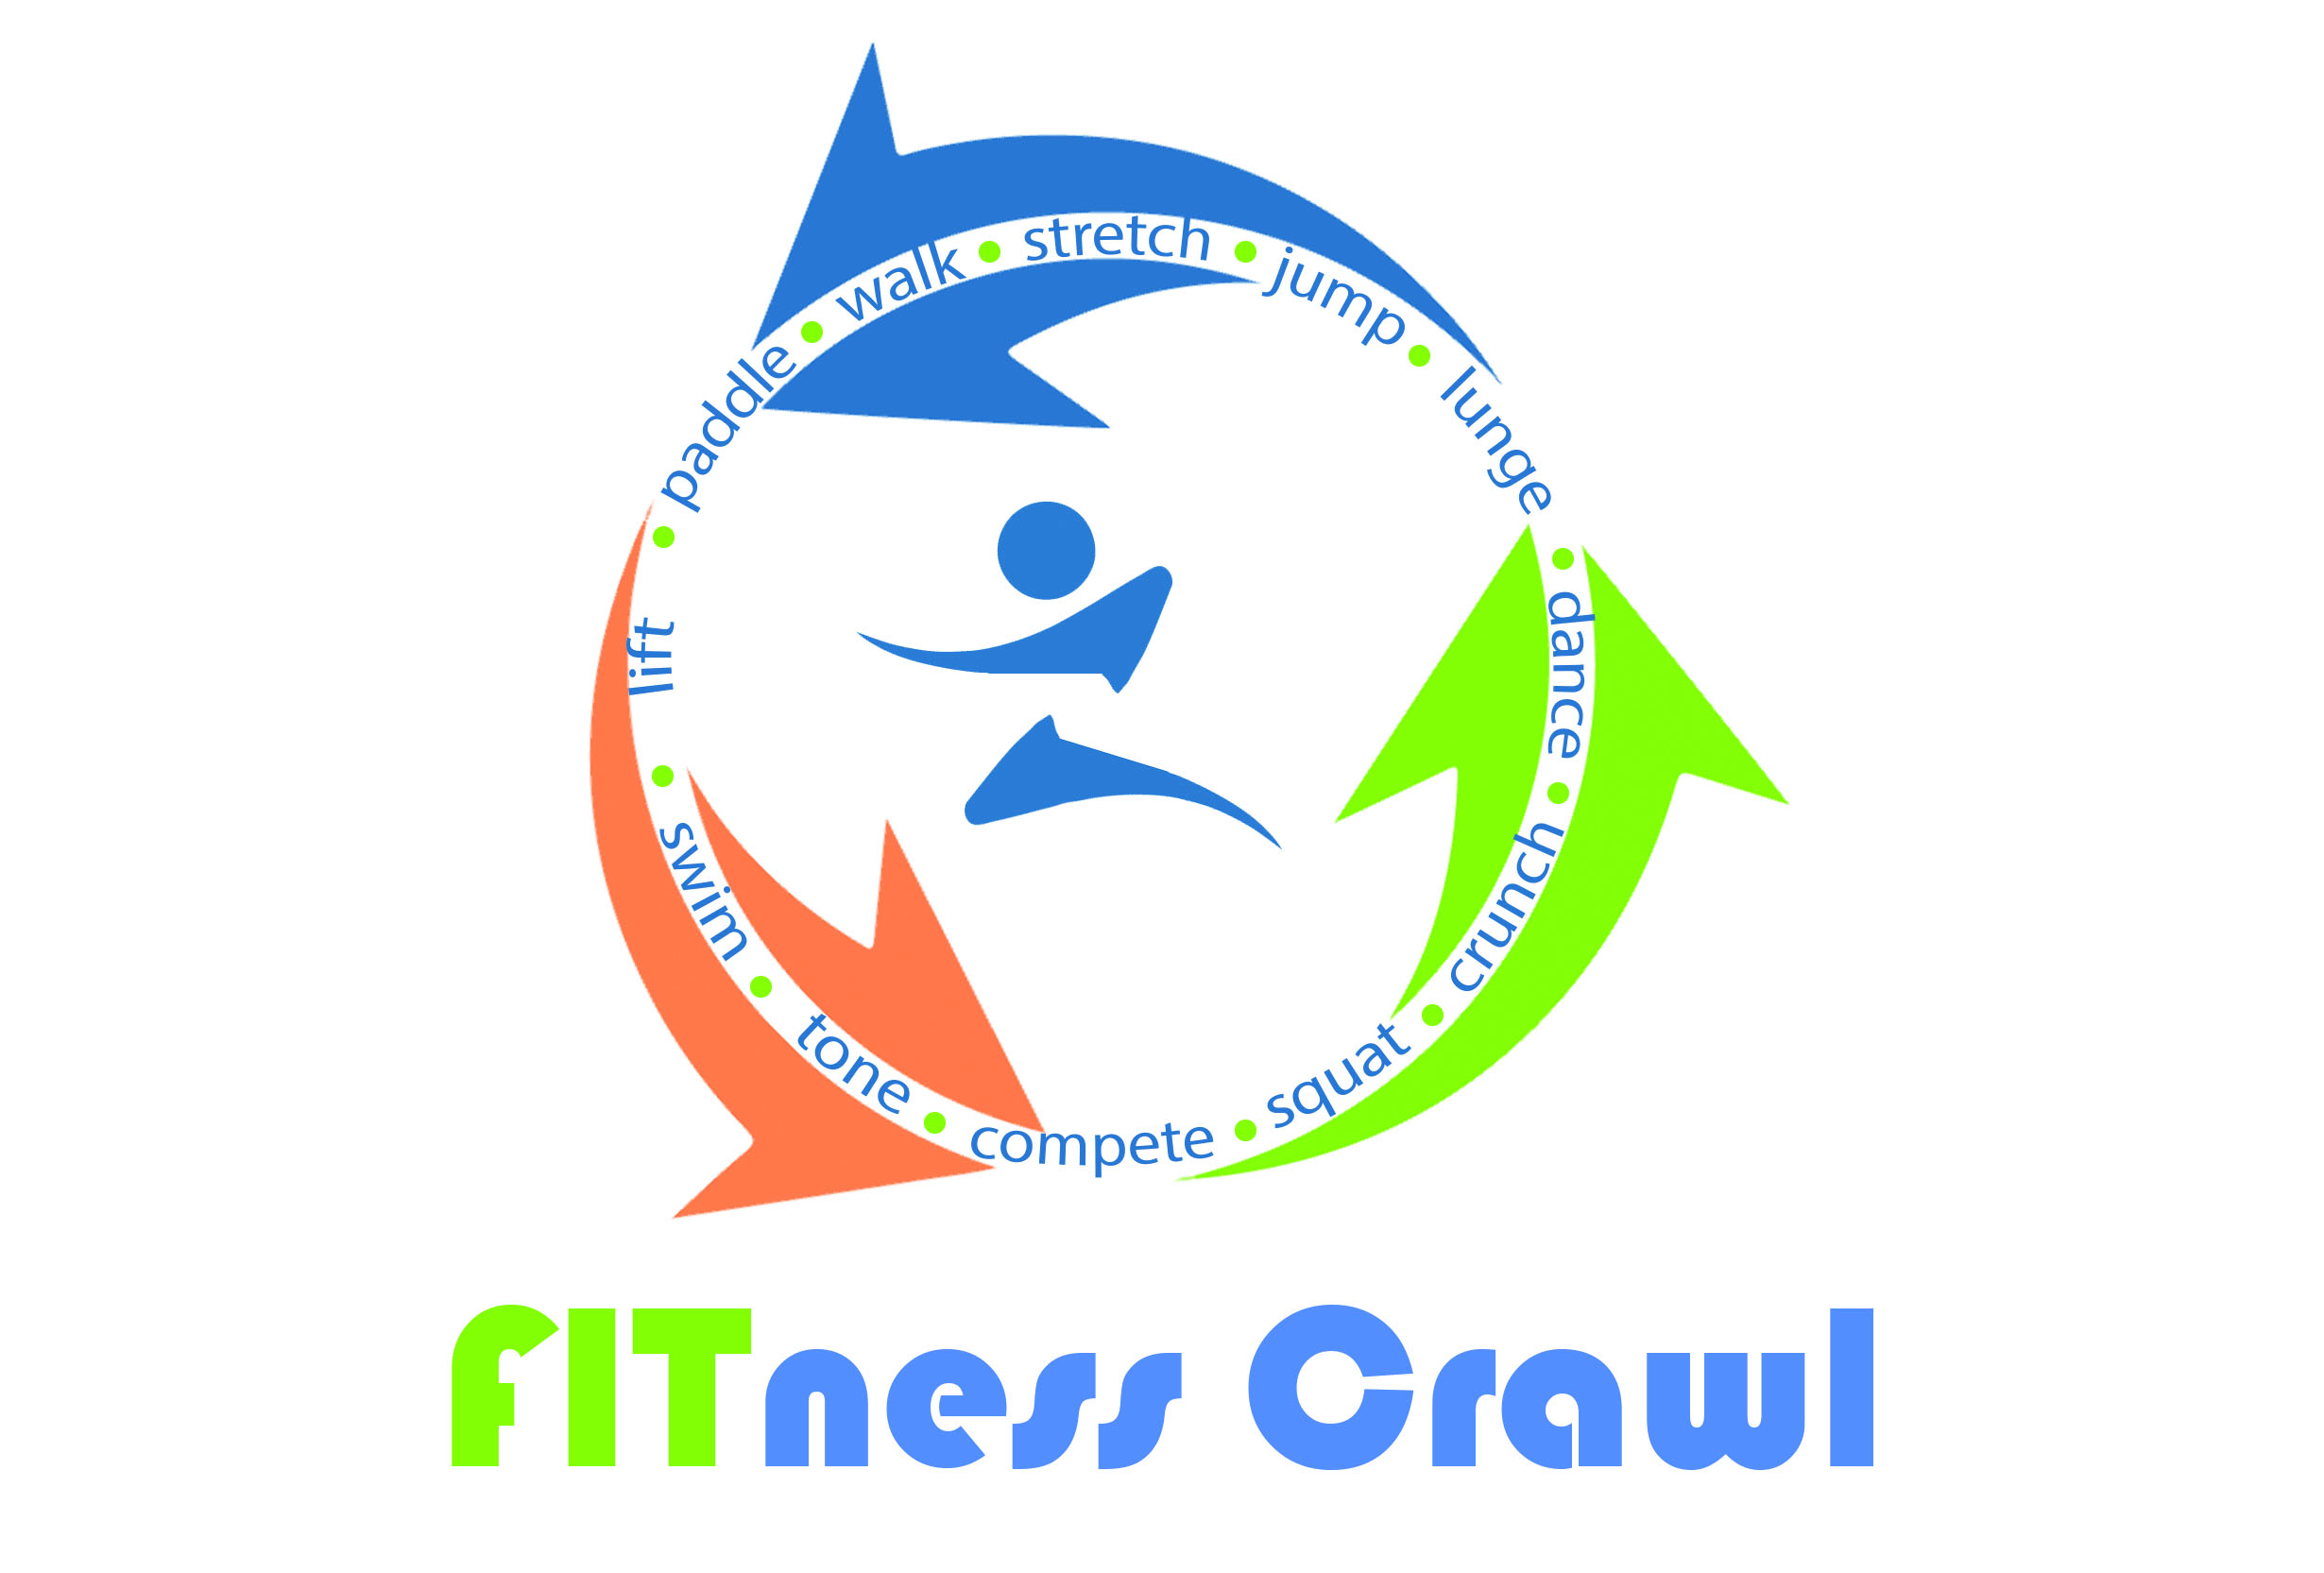 Fitness 20crawl